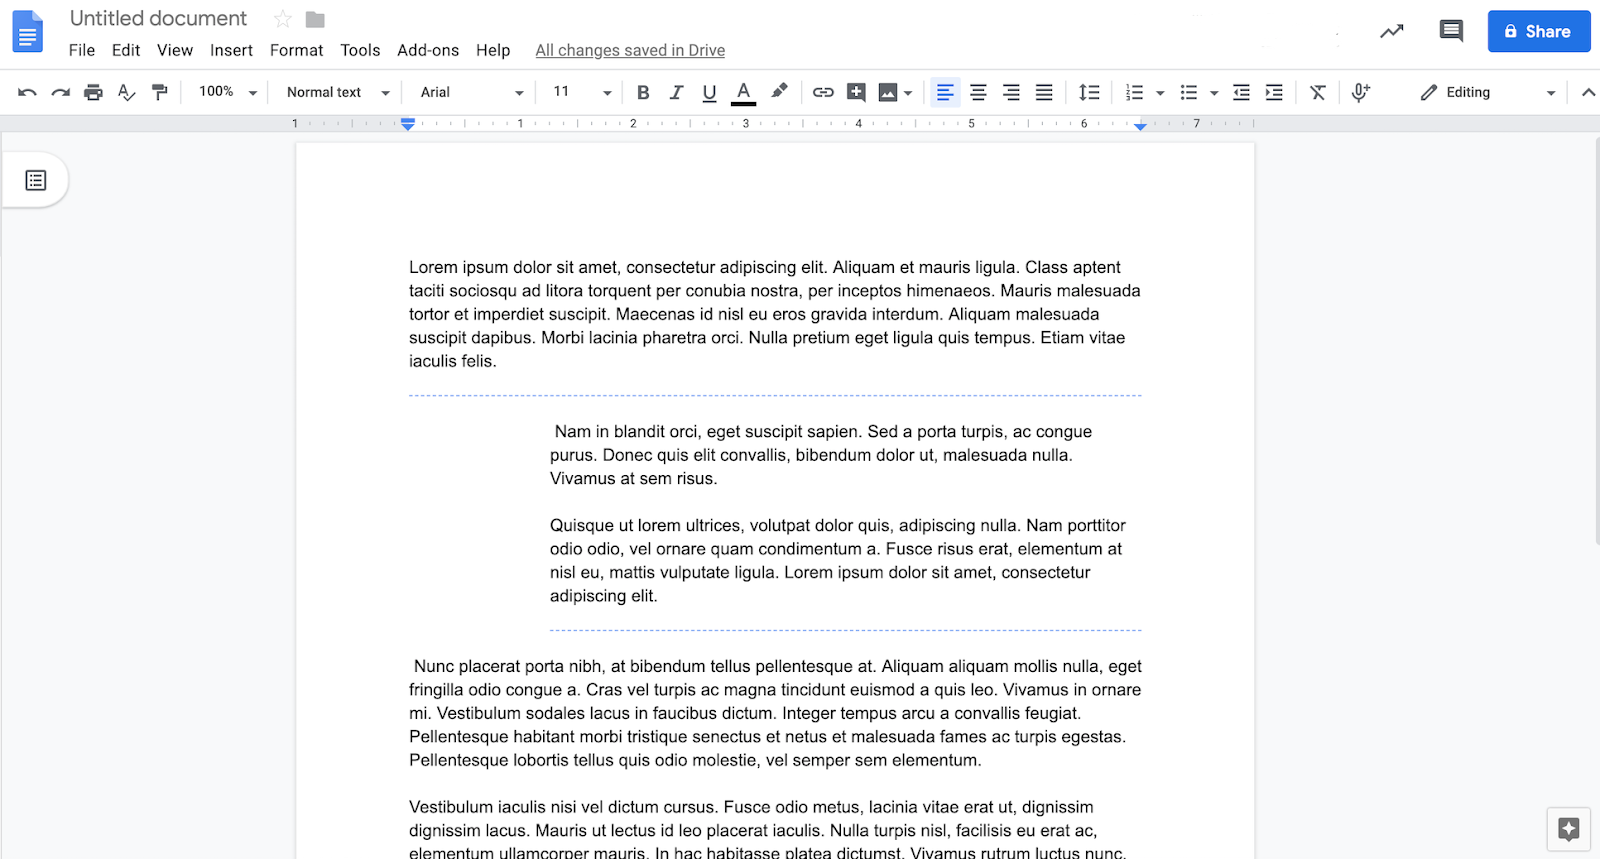 G Suite Updates Blog: Two new formatting tools available in Docs